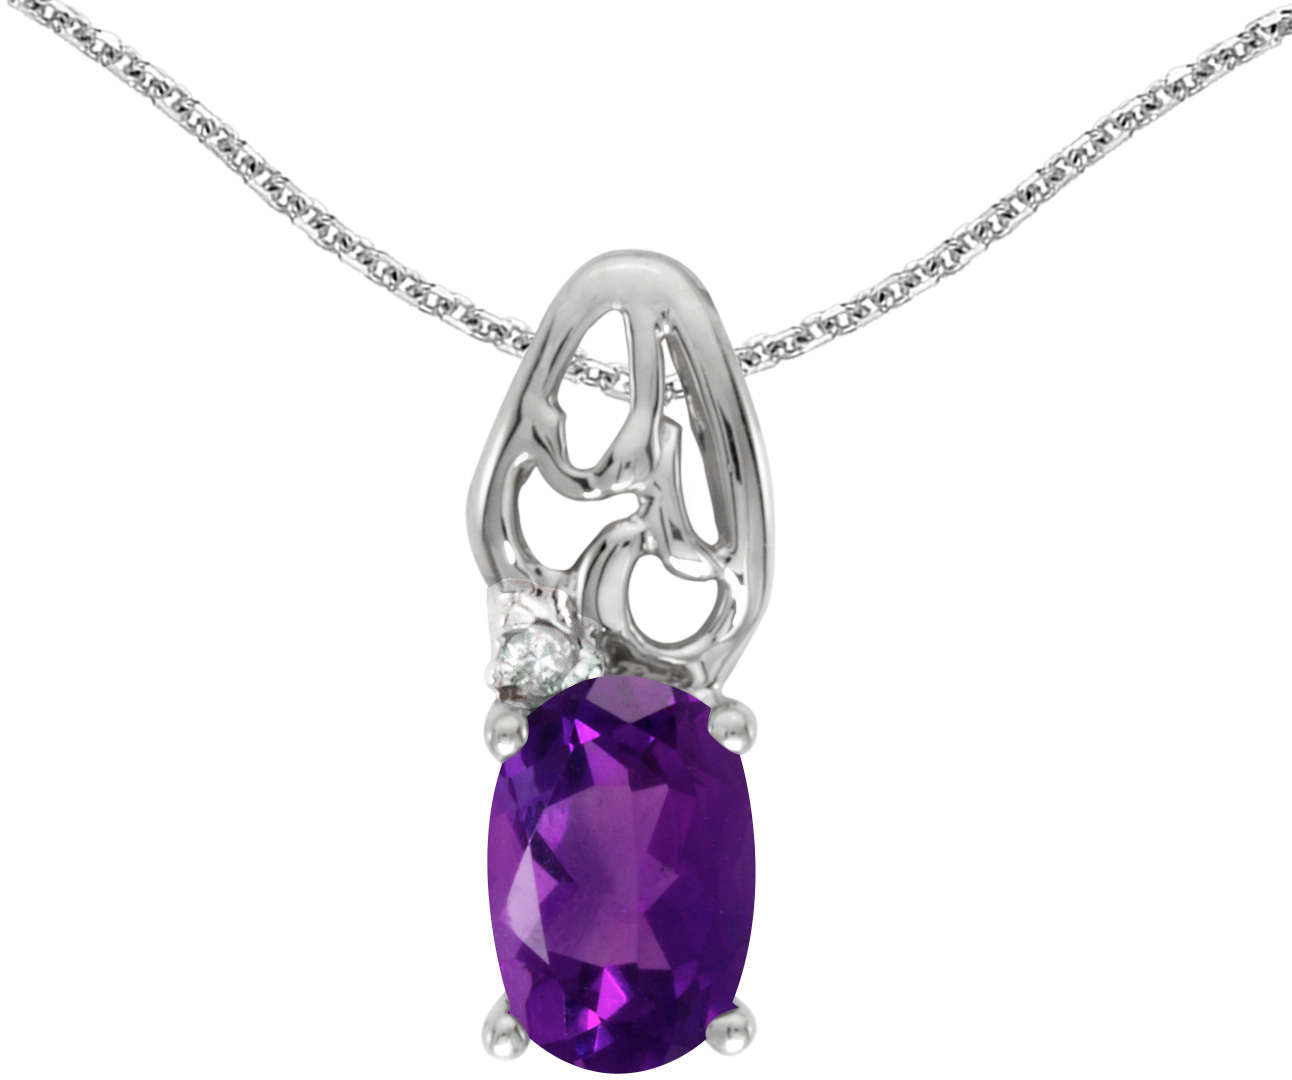 10k White Gold Oval Amethyst & Diamond Pendant (Chain NOT included) P2582W-02